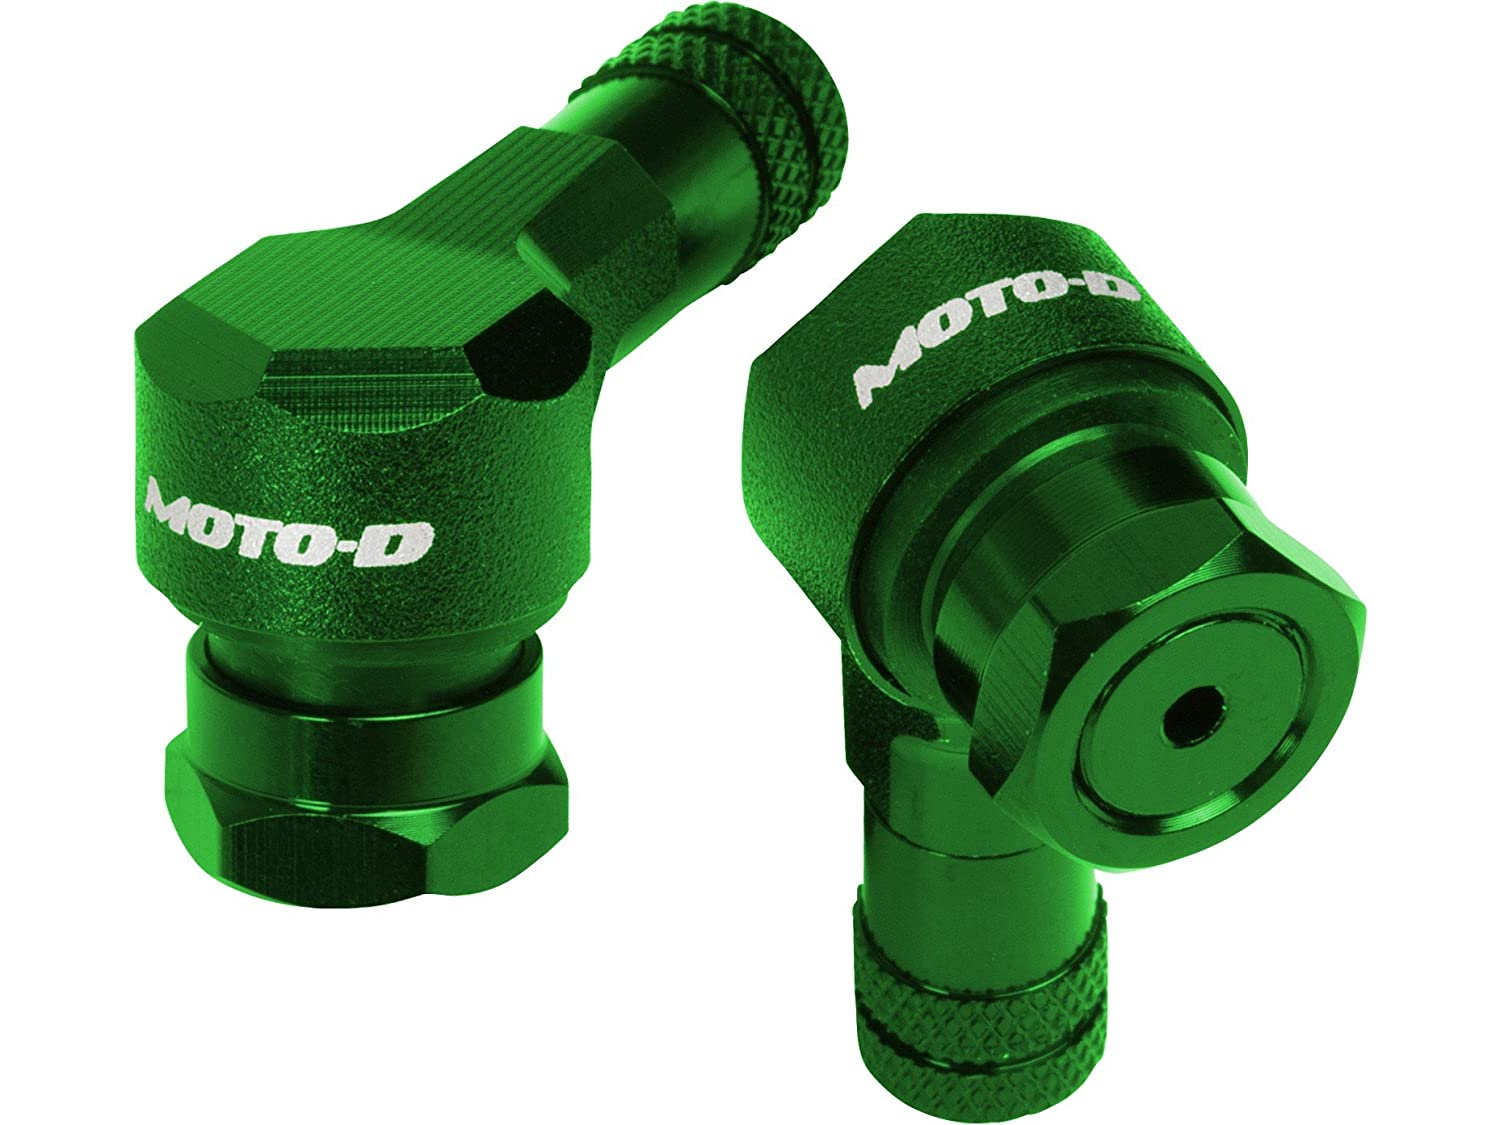 11.3mm Blue MOTO-D Angled Motorcycle Valve Stems